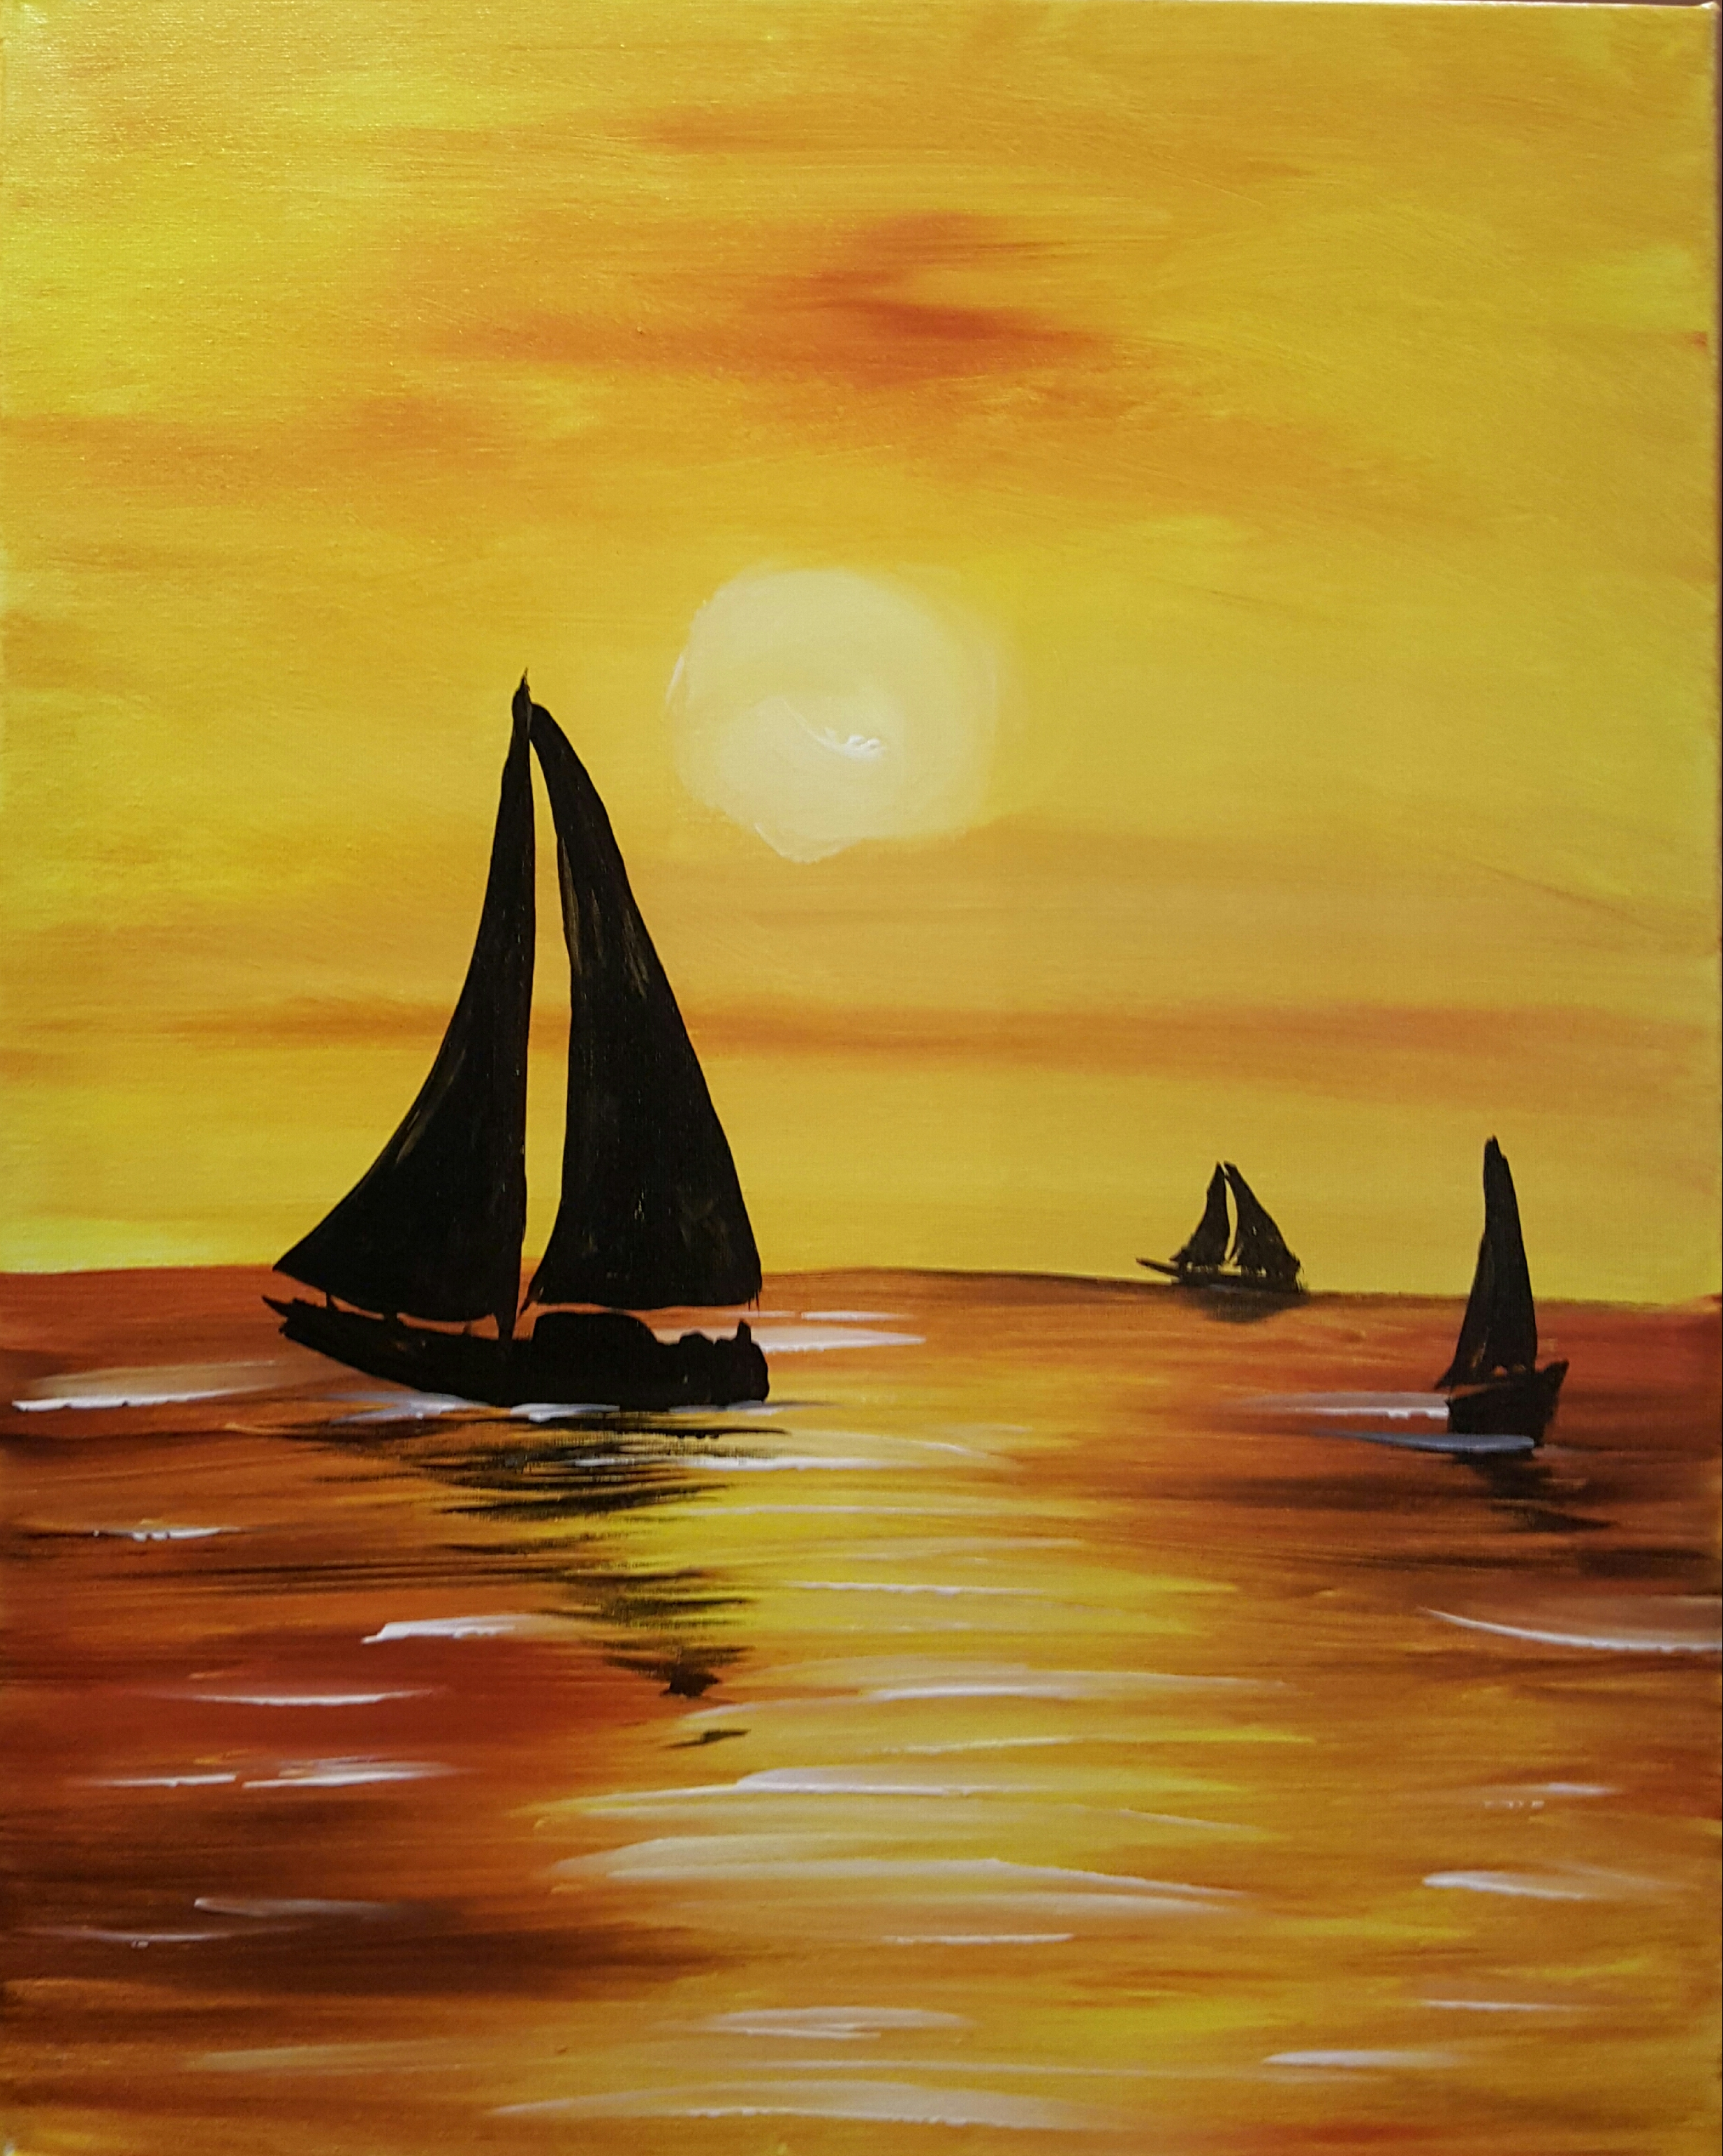 Sail Boats of the evening